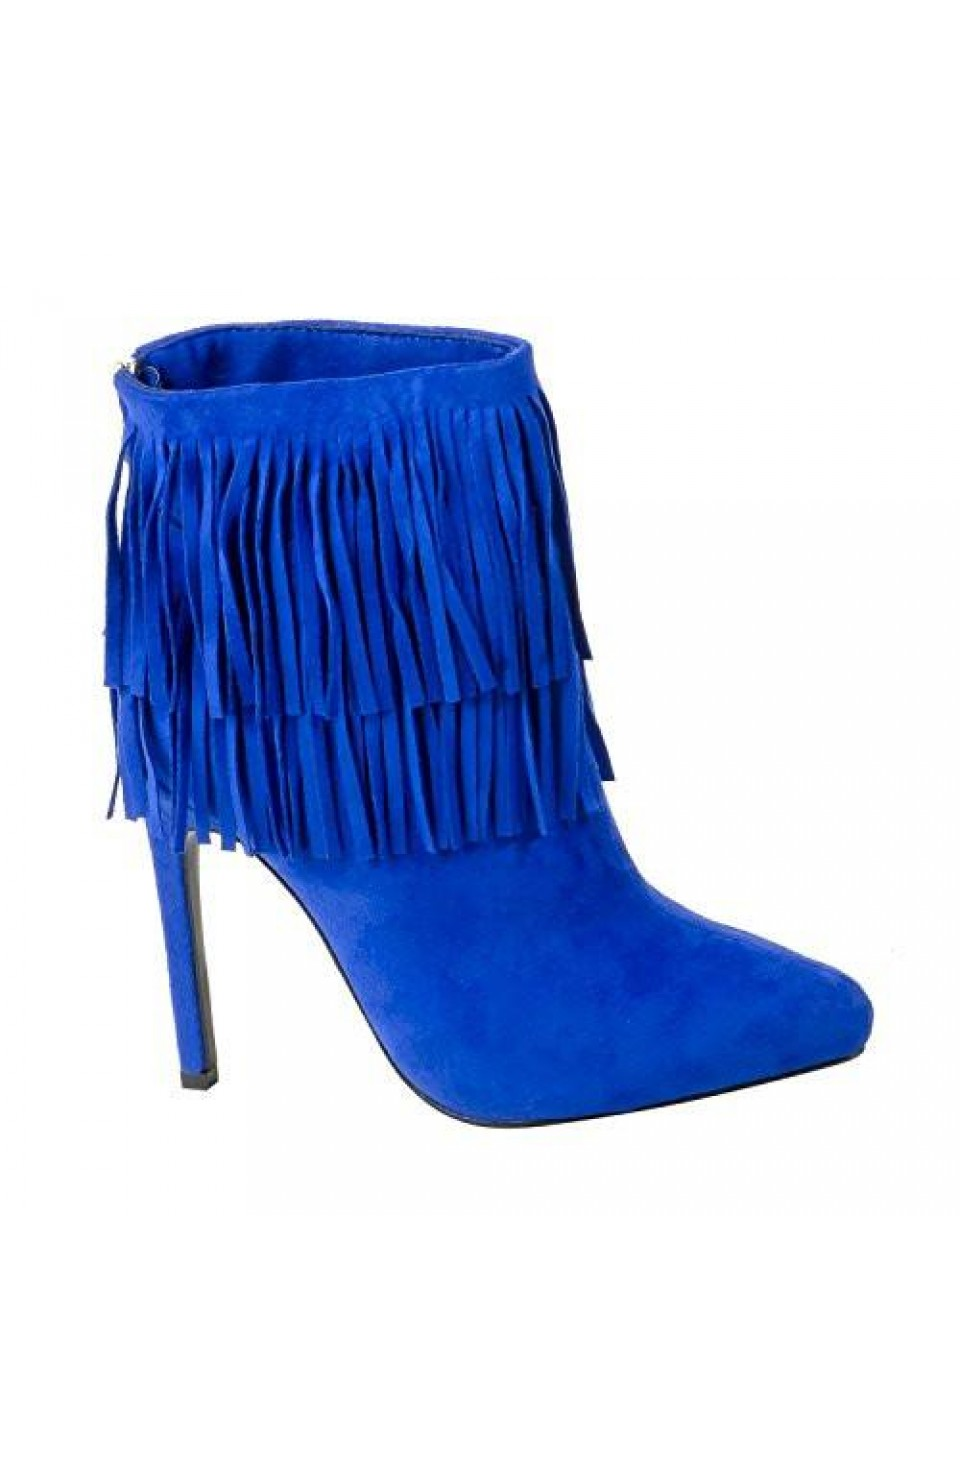 Women's Royal Blue Manmade Newpport 4.5-inch Heeled Bootie with Double Layer of Fringe